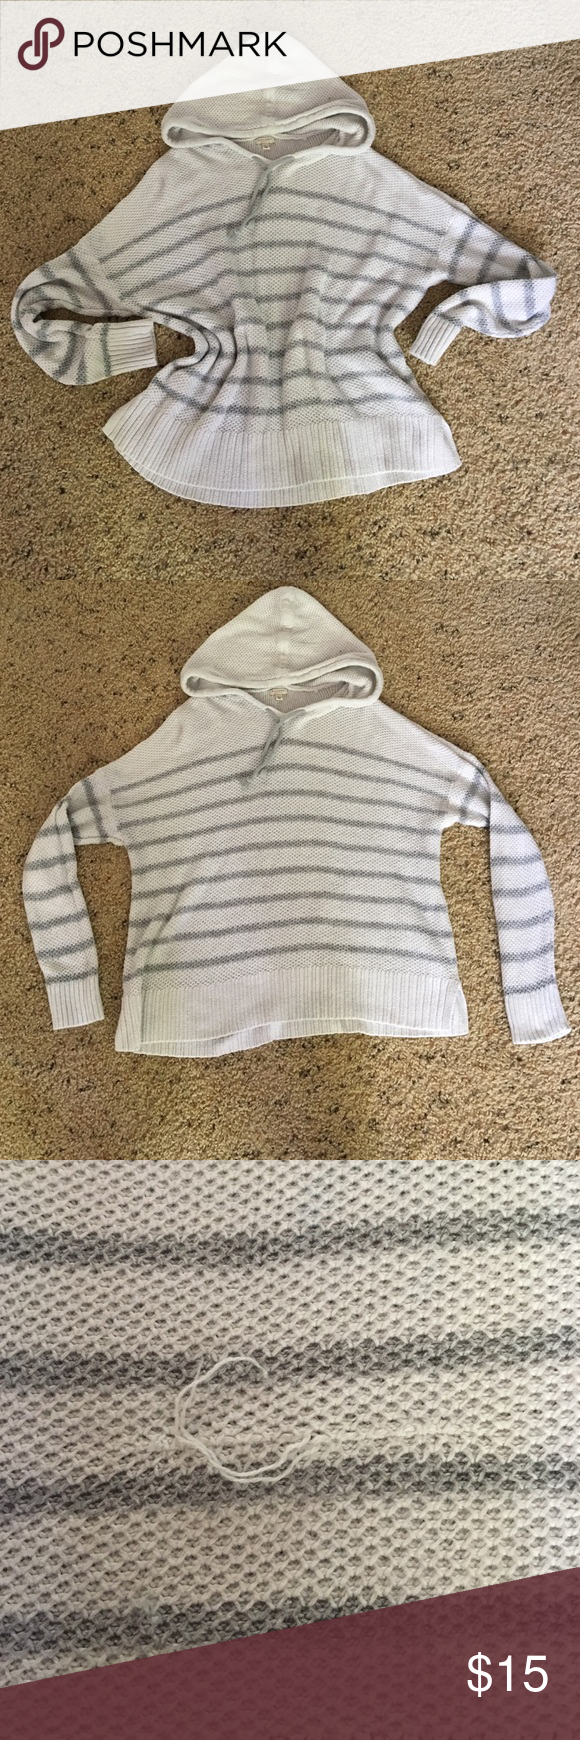 Hooded knit sweater get large and wear as a cute oversized sweater ...